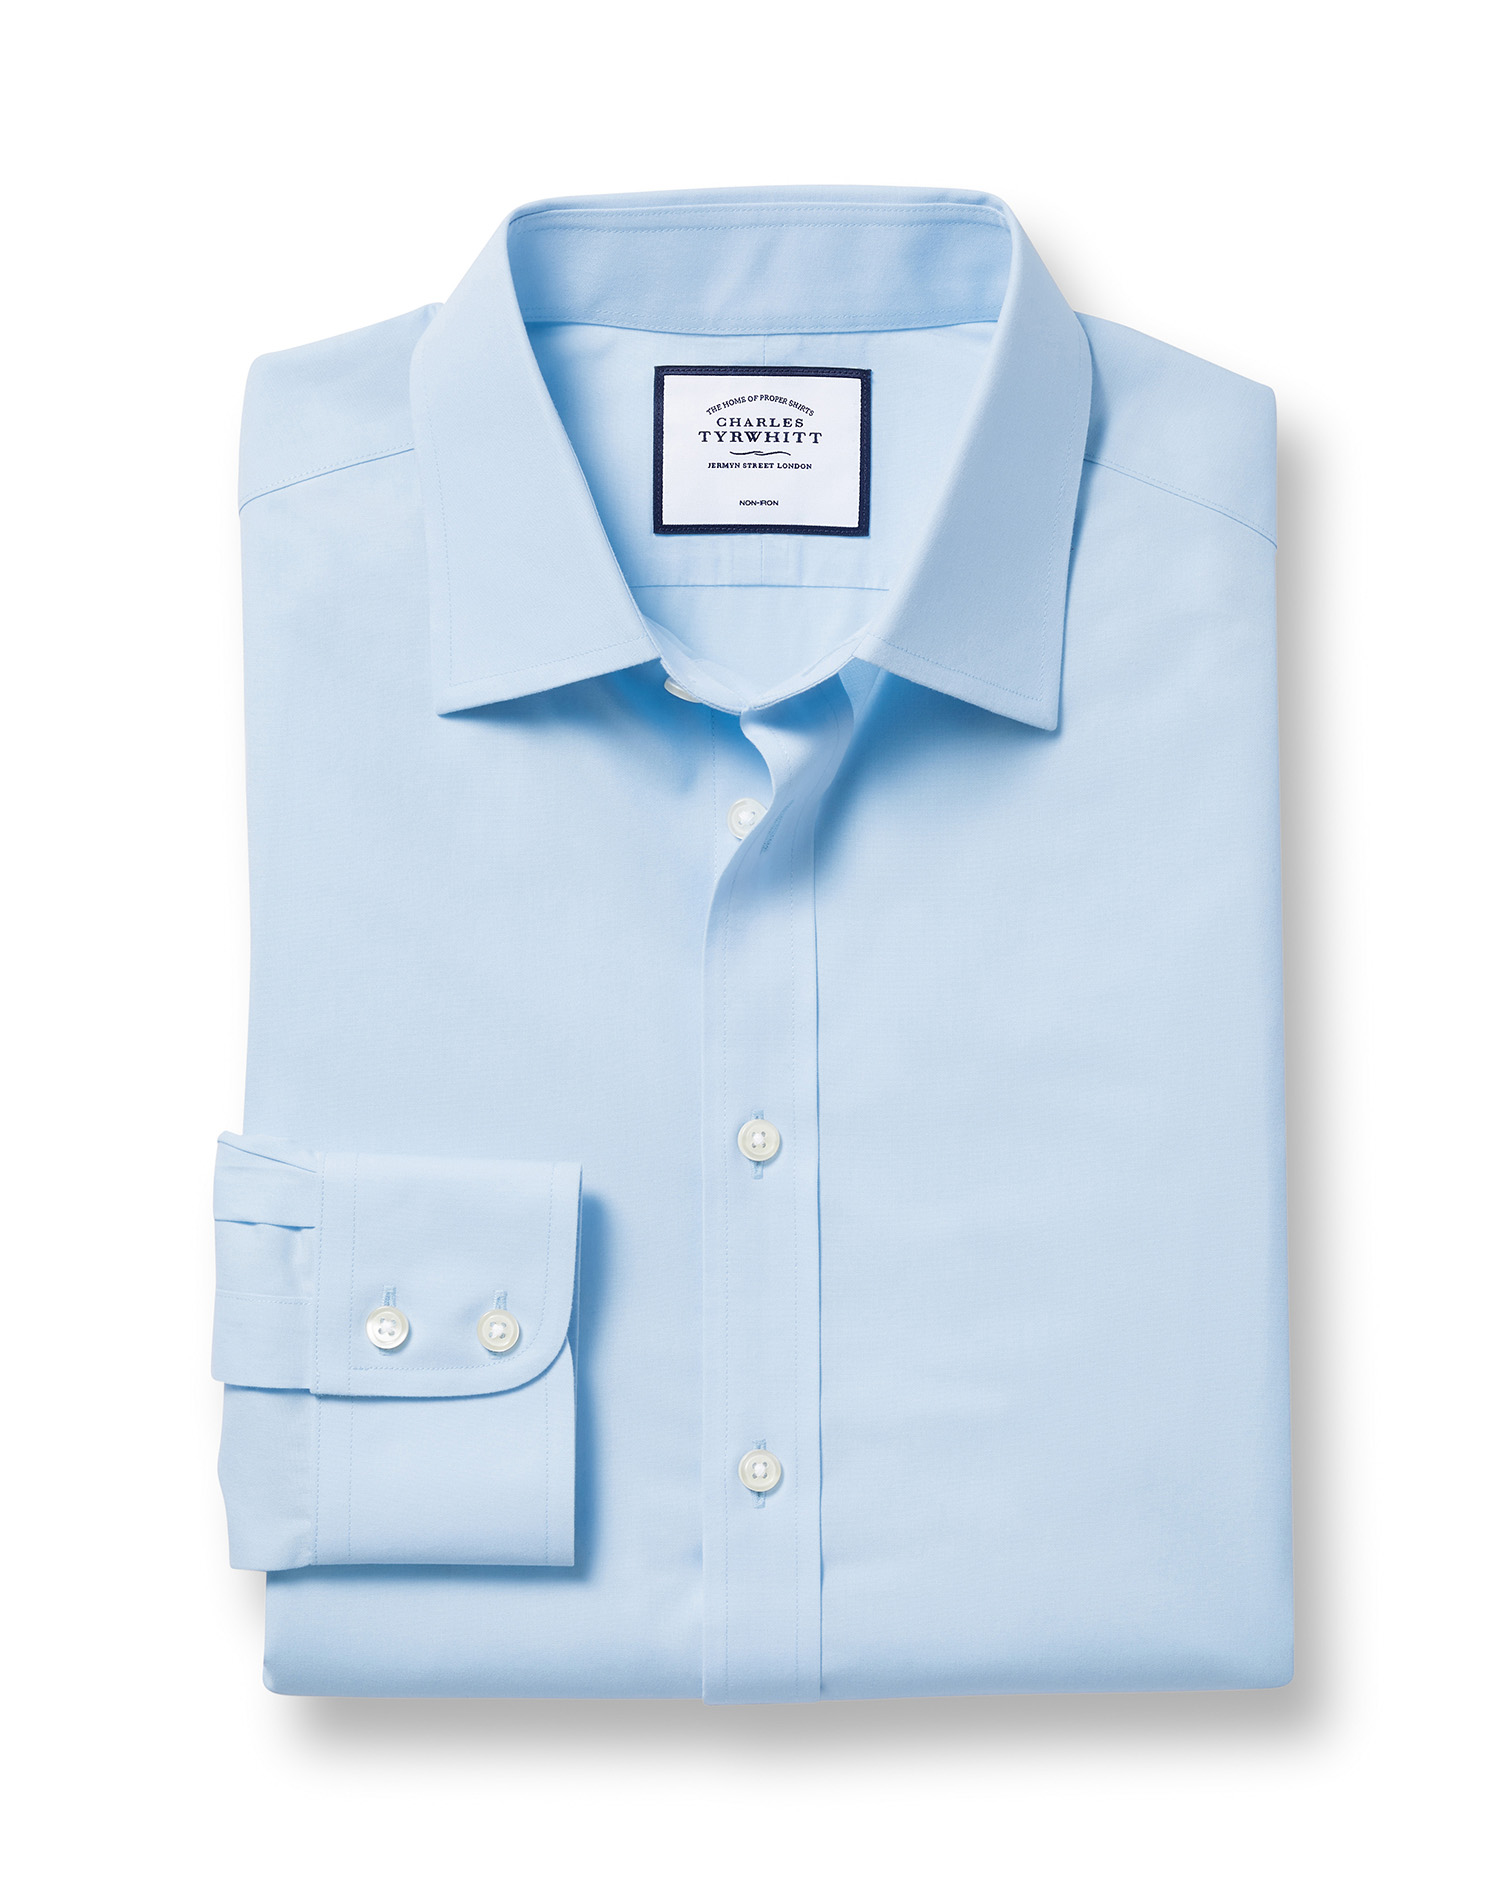 Classic Fit Non-Iron Poplin Sky Blue Cotton Formal Shirt Double Cuff Size 19/38 by Charles Tyrwhitt